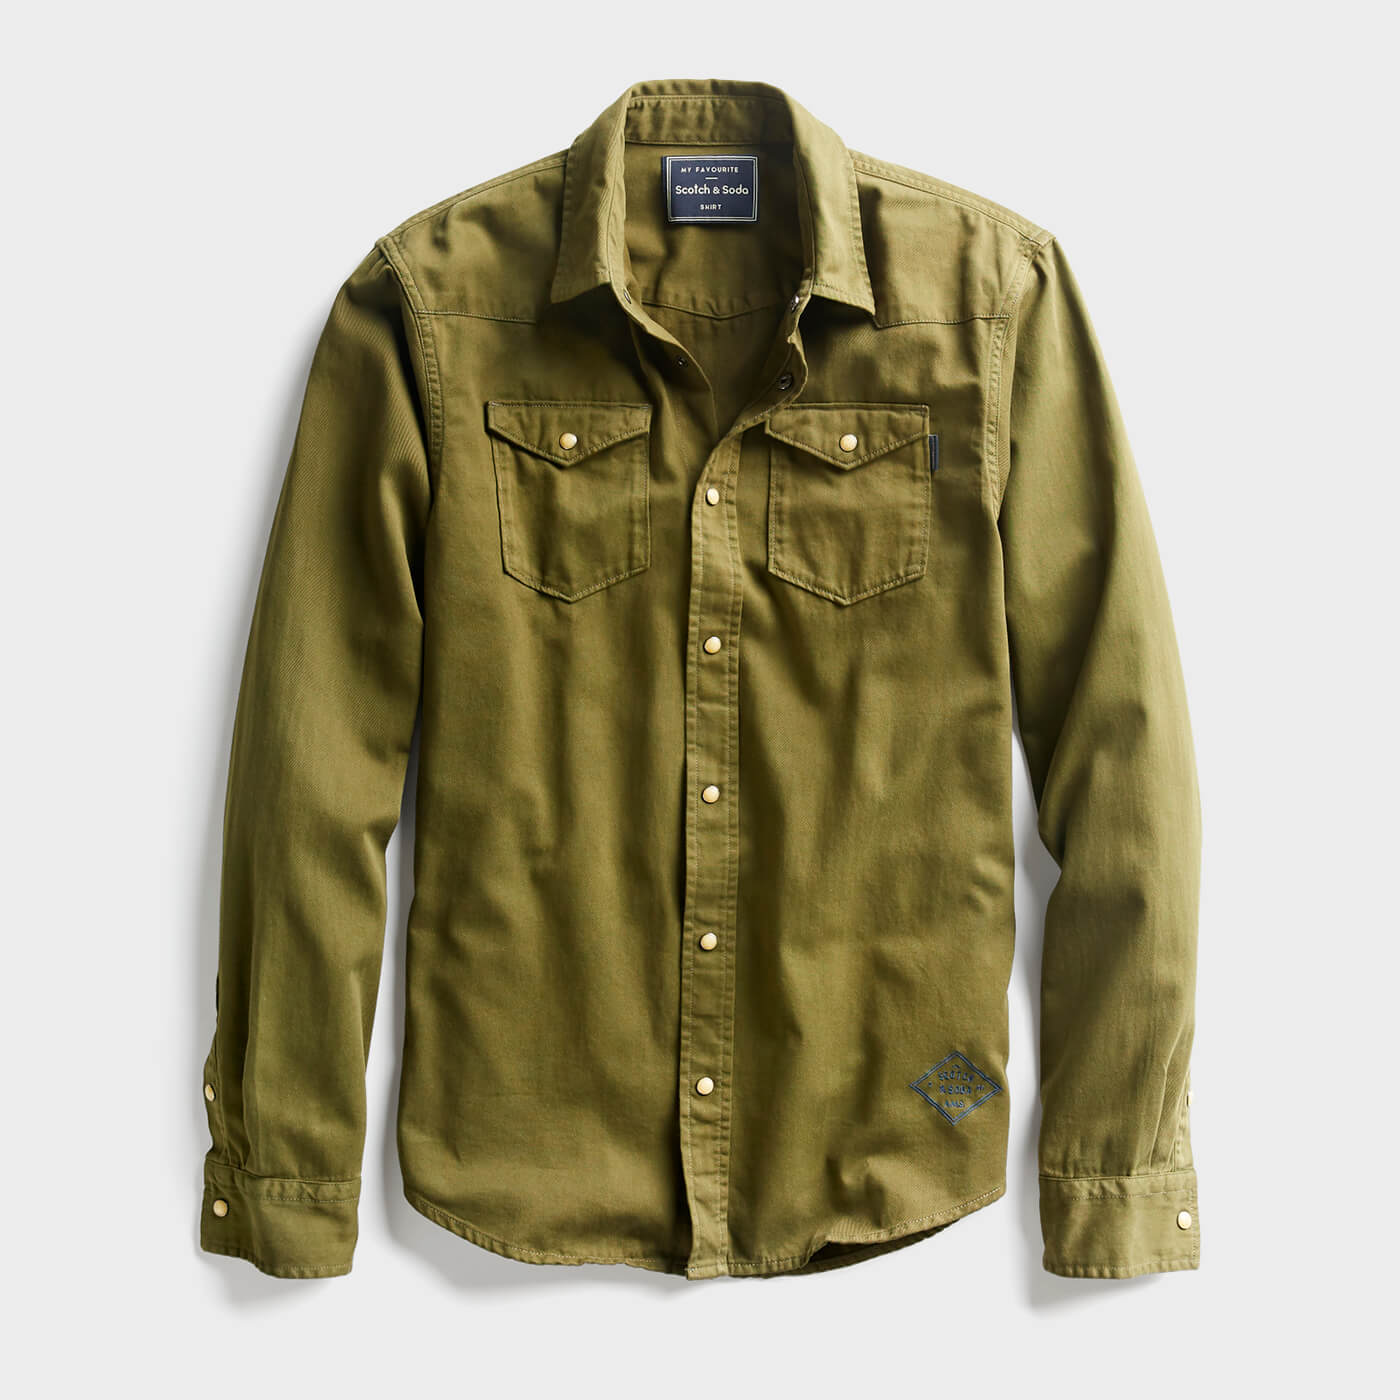 olive green work shirt